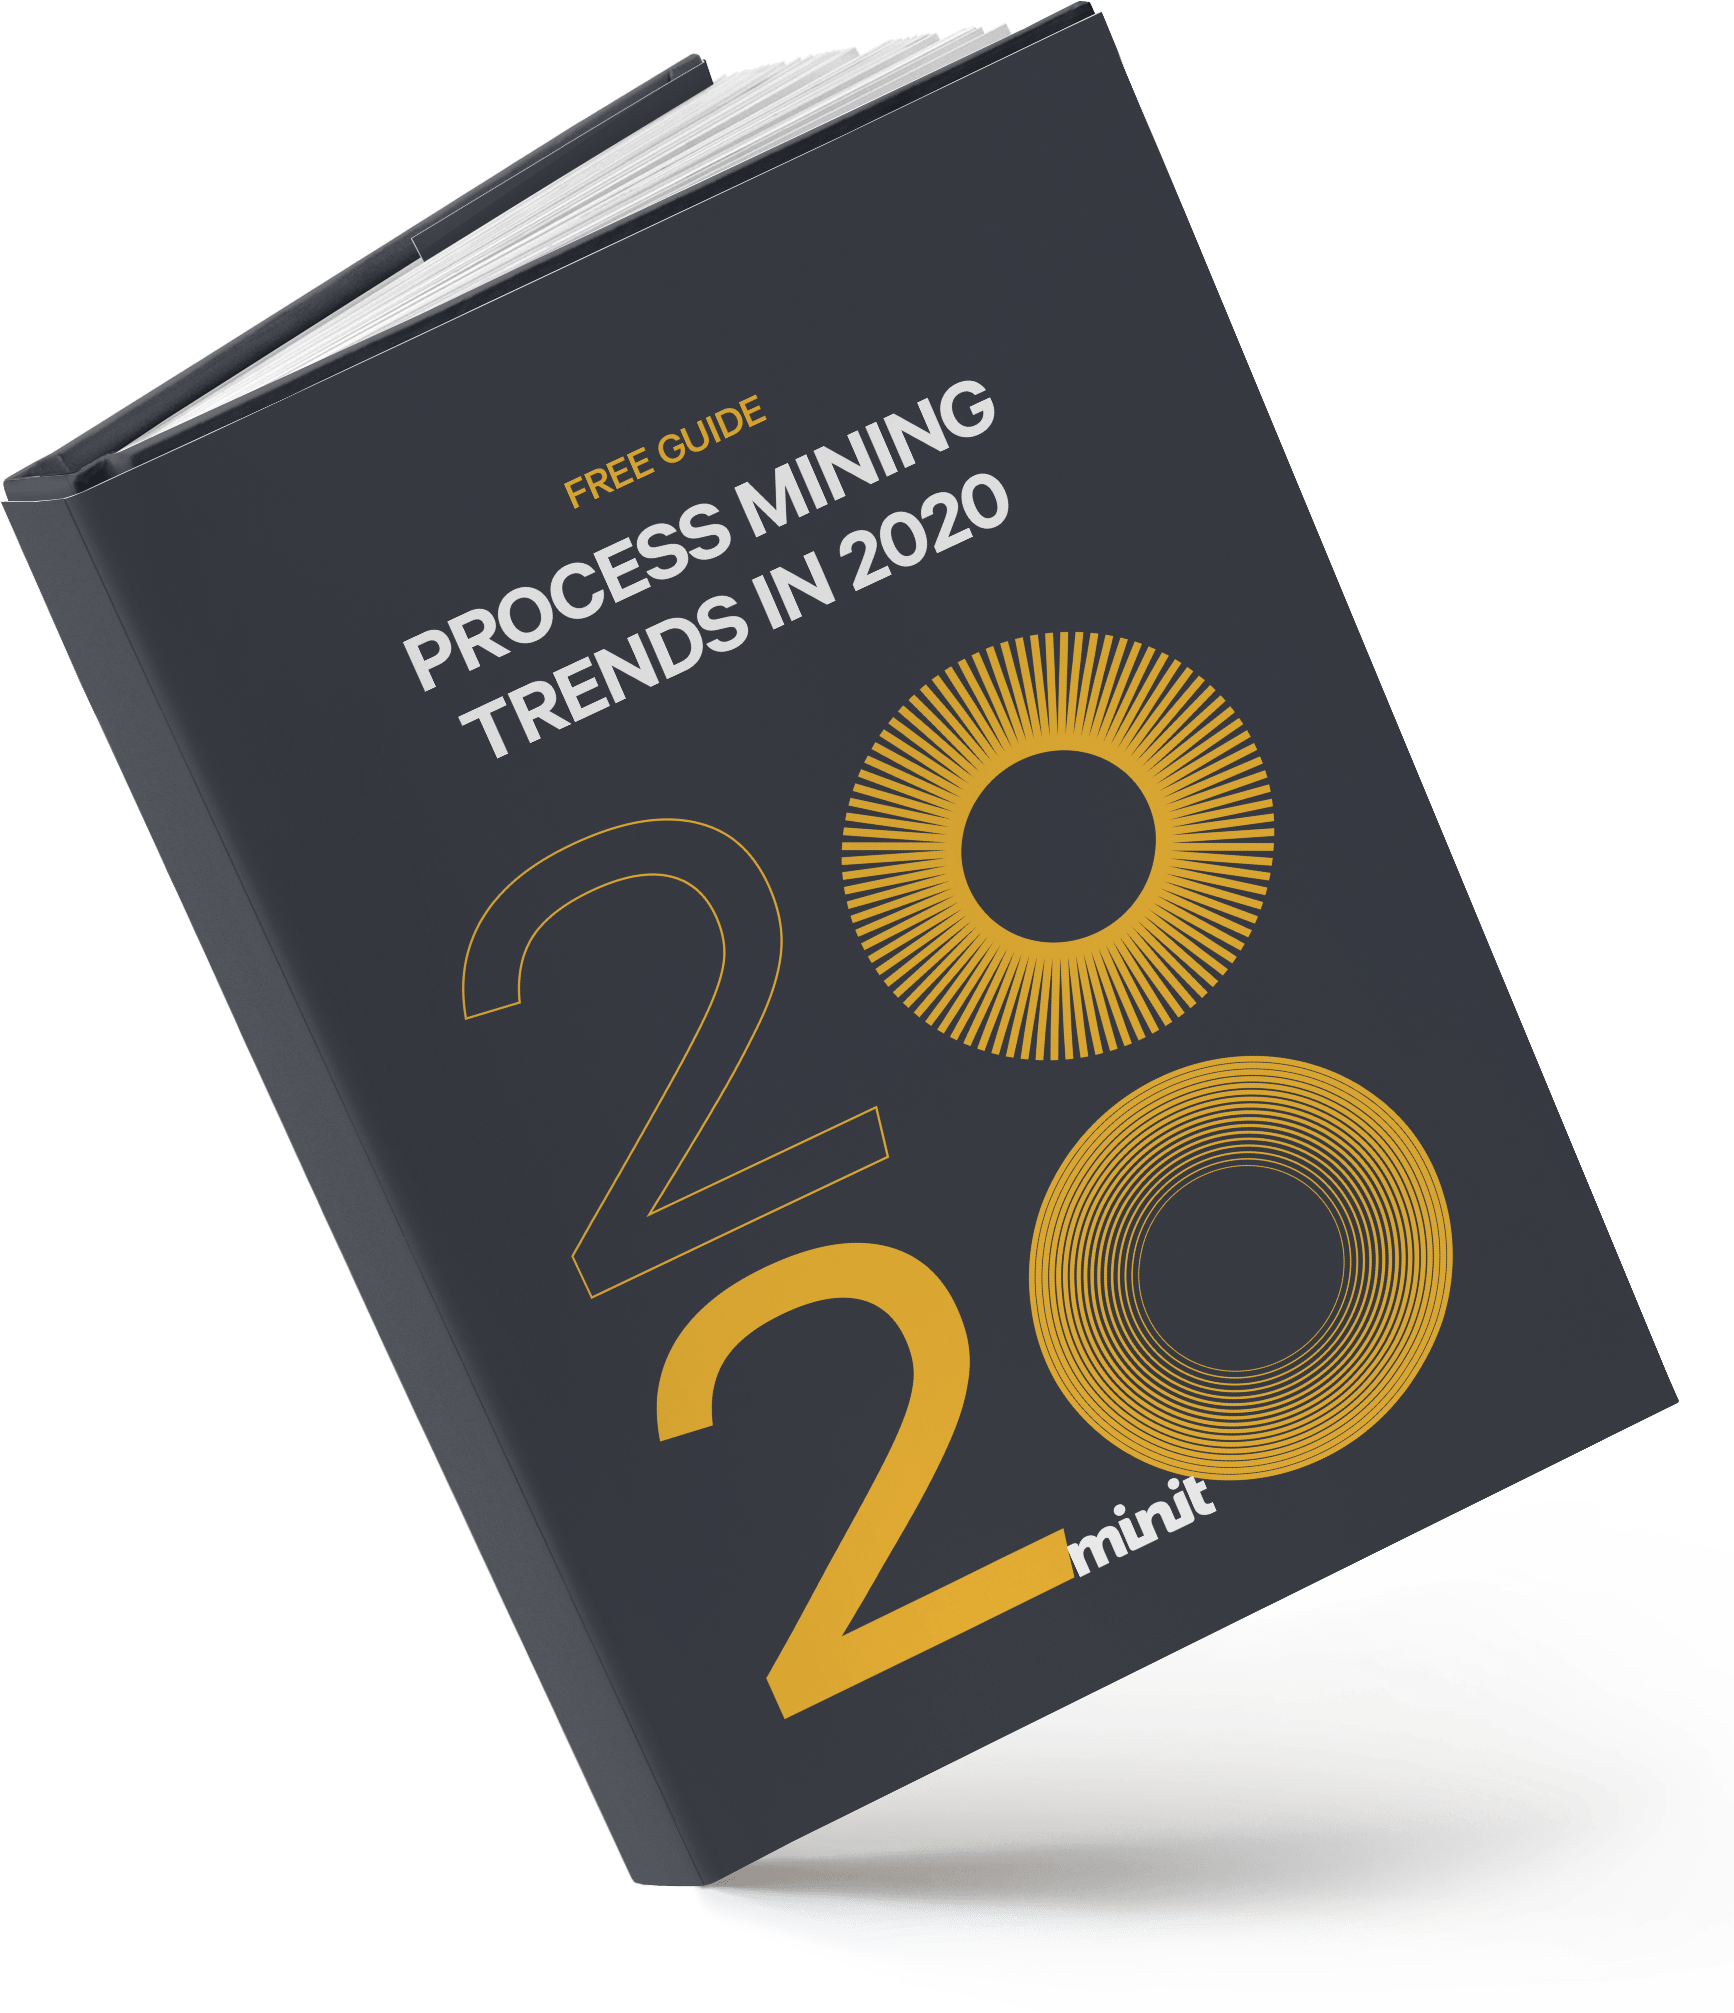 minit-process-mining-trends-in-2020@3x